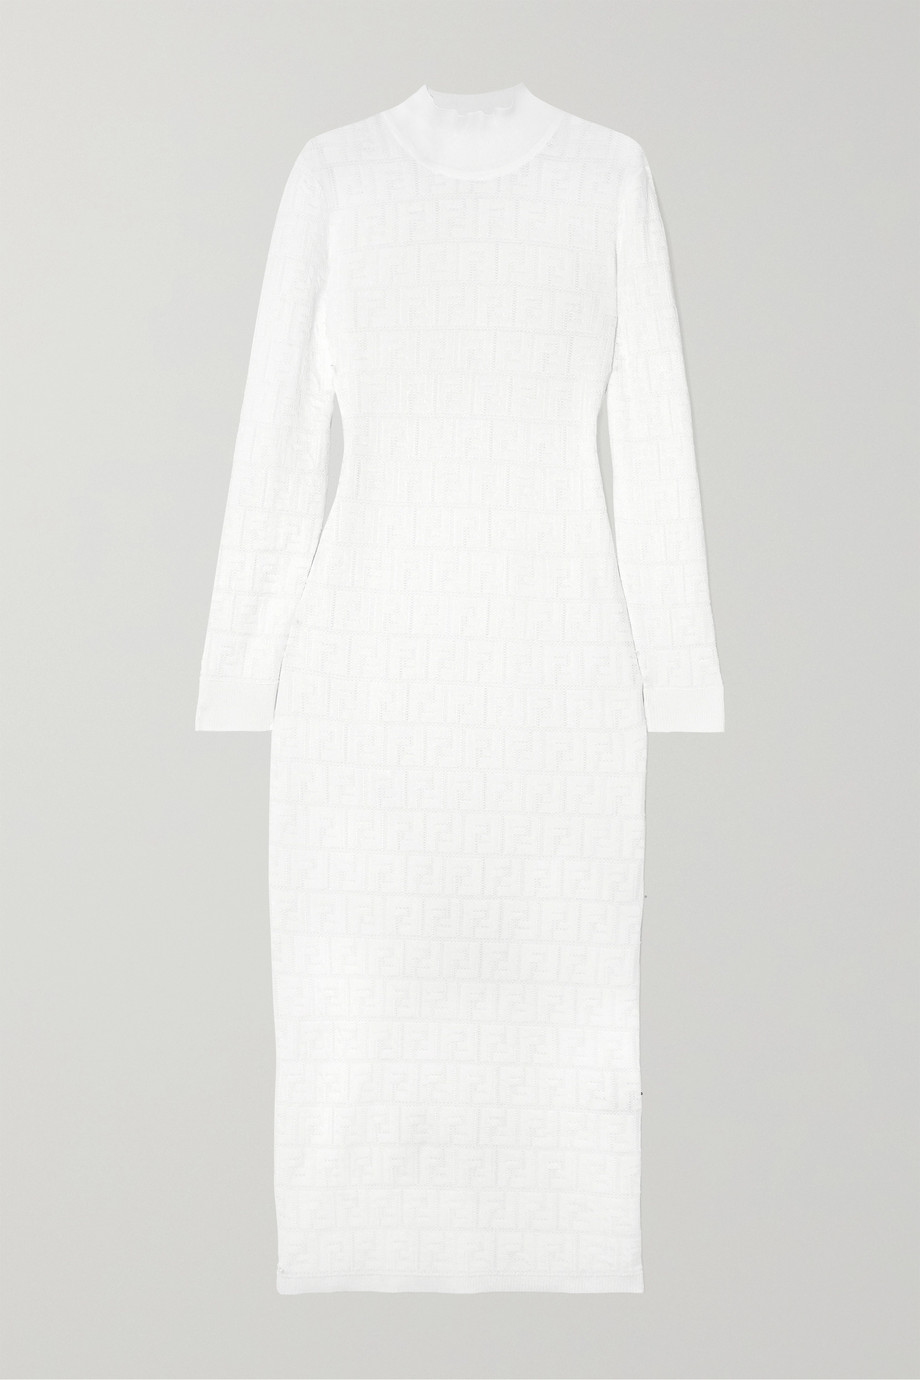 Fendi Cotton-blend jacquard-knit  midi dress